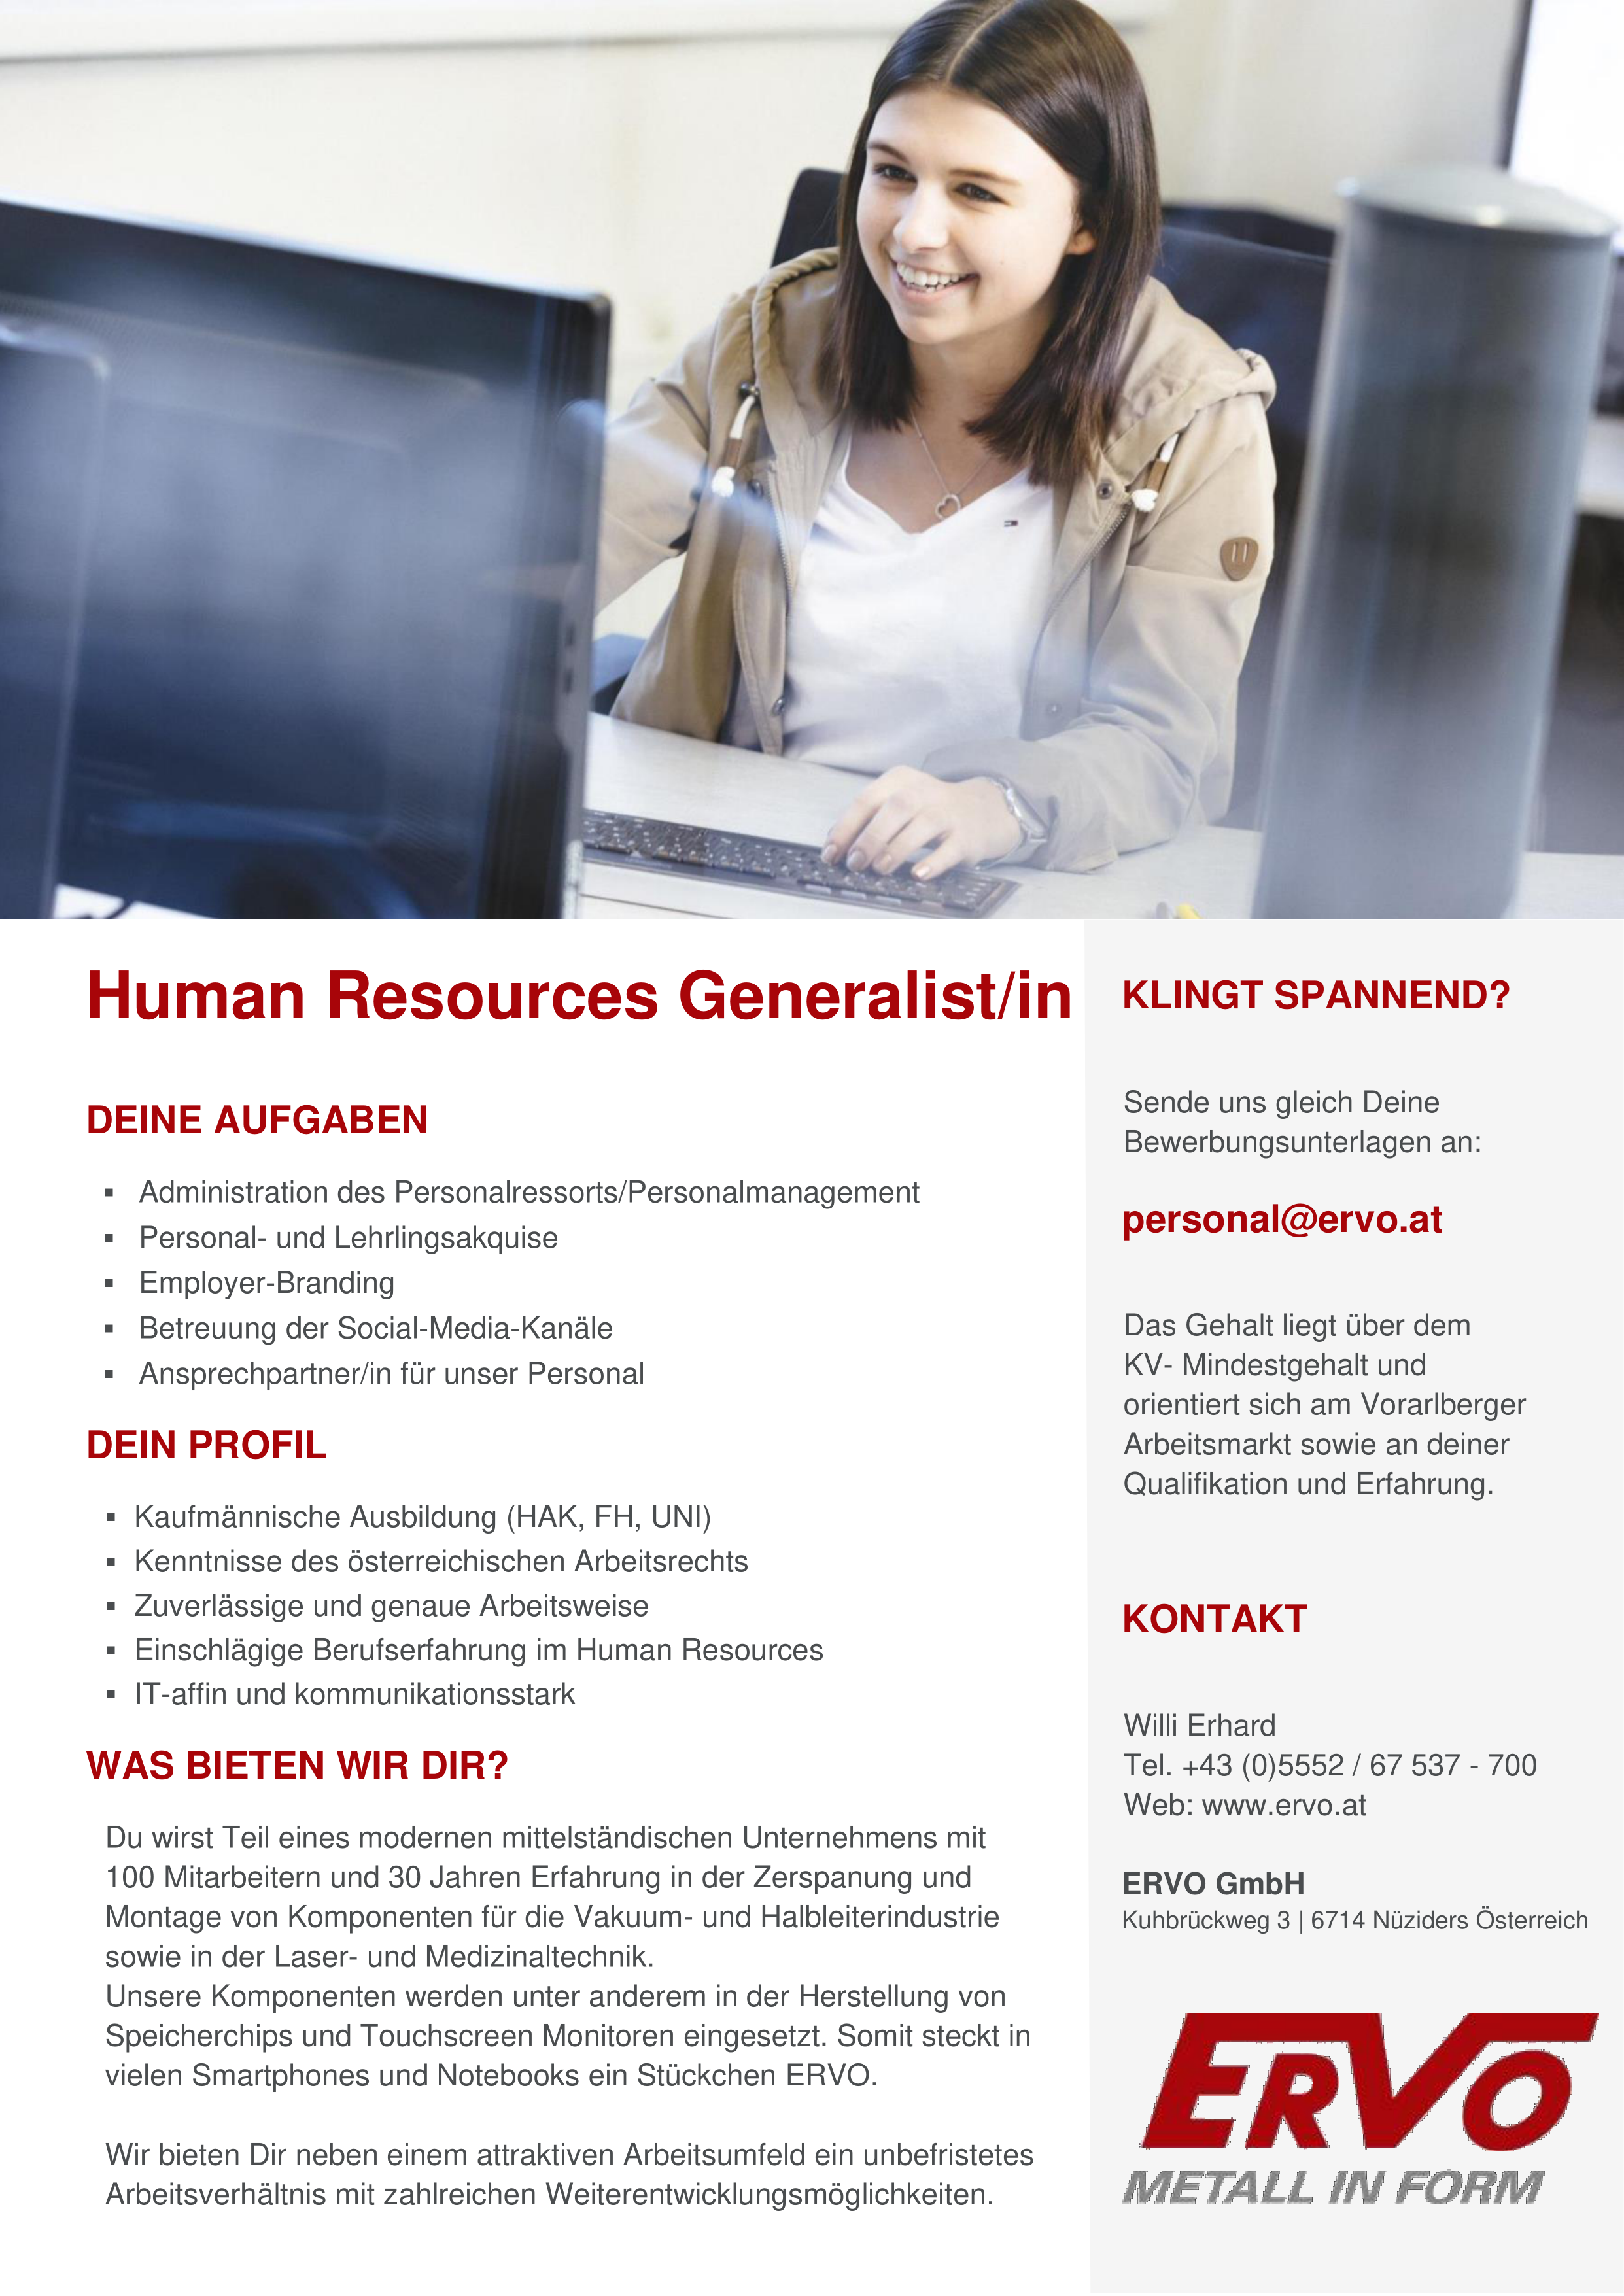 Human Resources Generalist/in